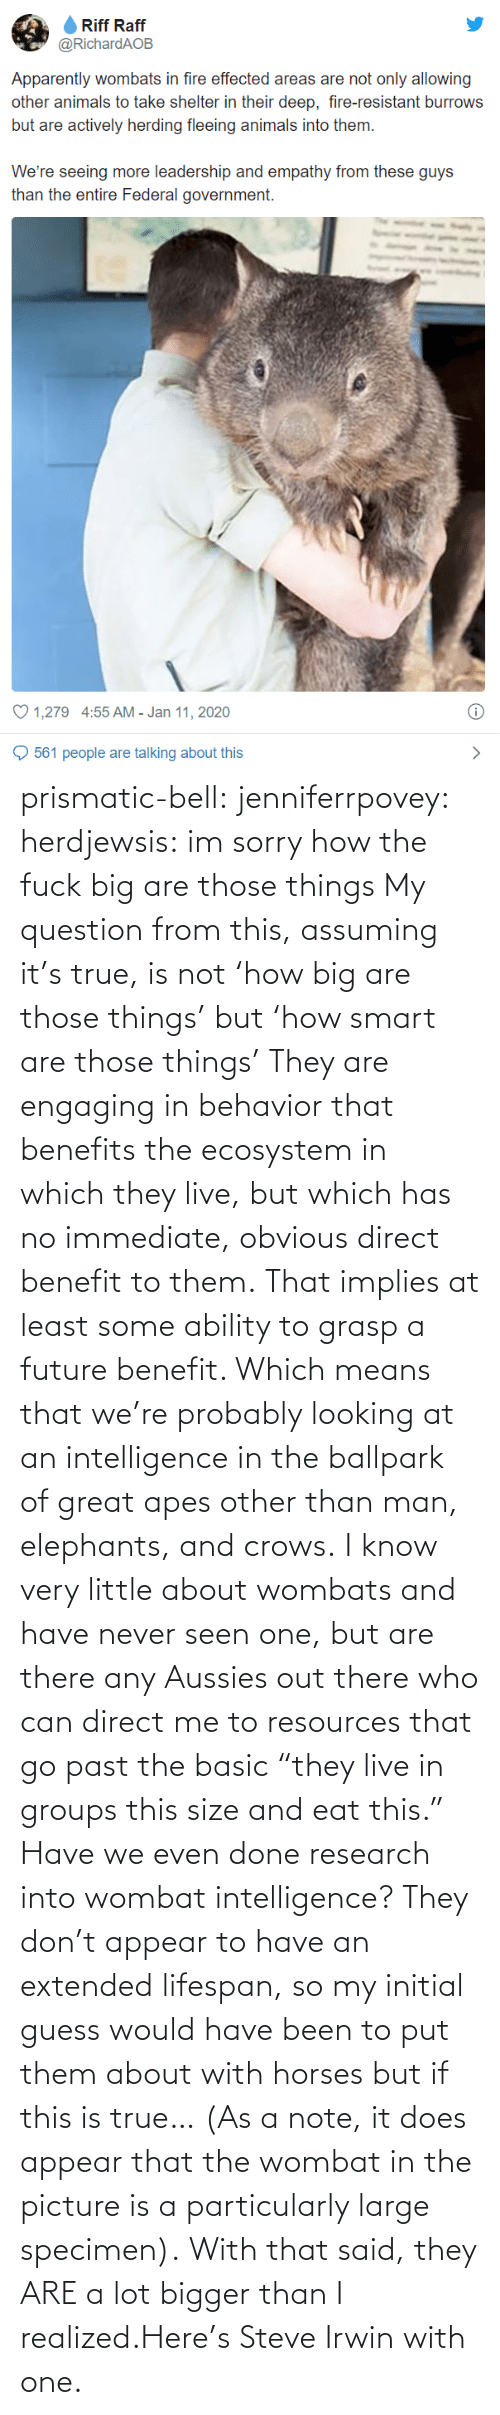 "those: prismatic-bell:  jenniferrpovey: herdjewsis: im sorry how the fuck big are those things My question from this, assuming it's true, is not 'how big are those things' but 'how smart are those things' They are engaging in behavior that benefits the ecosystem in which they live, but which has no immediate, obvious direct benefit to them. That implies at least some ability to grasp a future benefit. Which means that we're probably looking at an intelligence in the ballpark of great apes other than man, elephants, and crows. I know very little about wombats and have never seen one, but are there any Aussies out there who can direct me to resources that go past the basic ""they live in groups this size and eat this."" Have we even done research into wombat intelligence? They don't appear to have an extended lifespan, so my initial guess would have been to put them about with horses but if this is true… (As a note, it does appear that the wombat in the picture is a particularly large specimen).  With that said, they ARE a lot bigger than I realized.Here's Steve Irwin with one."